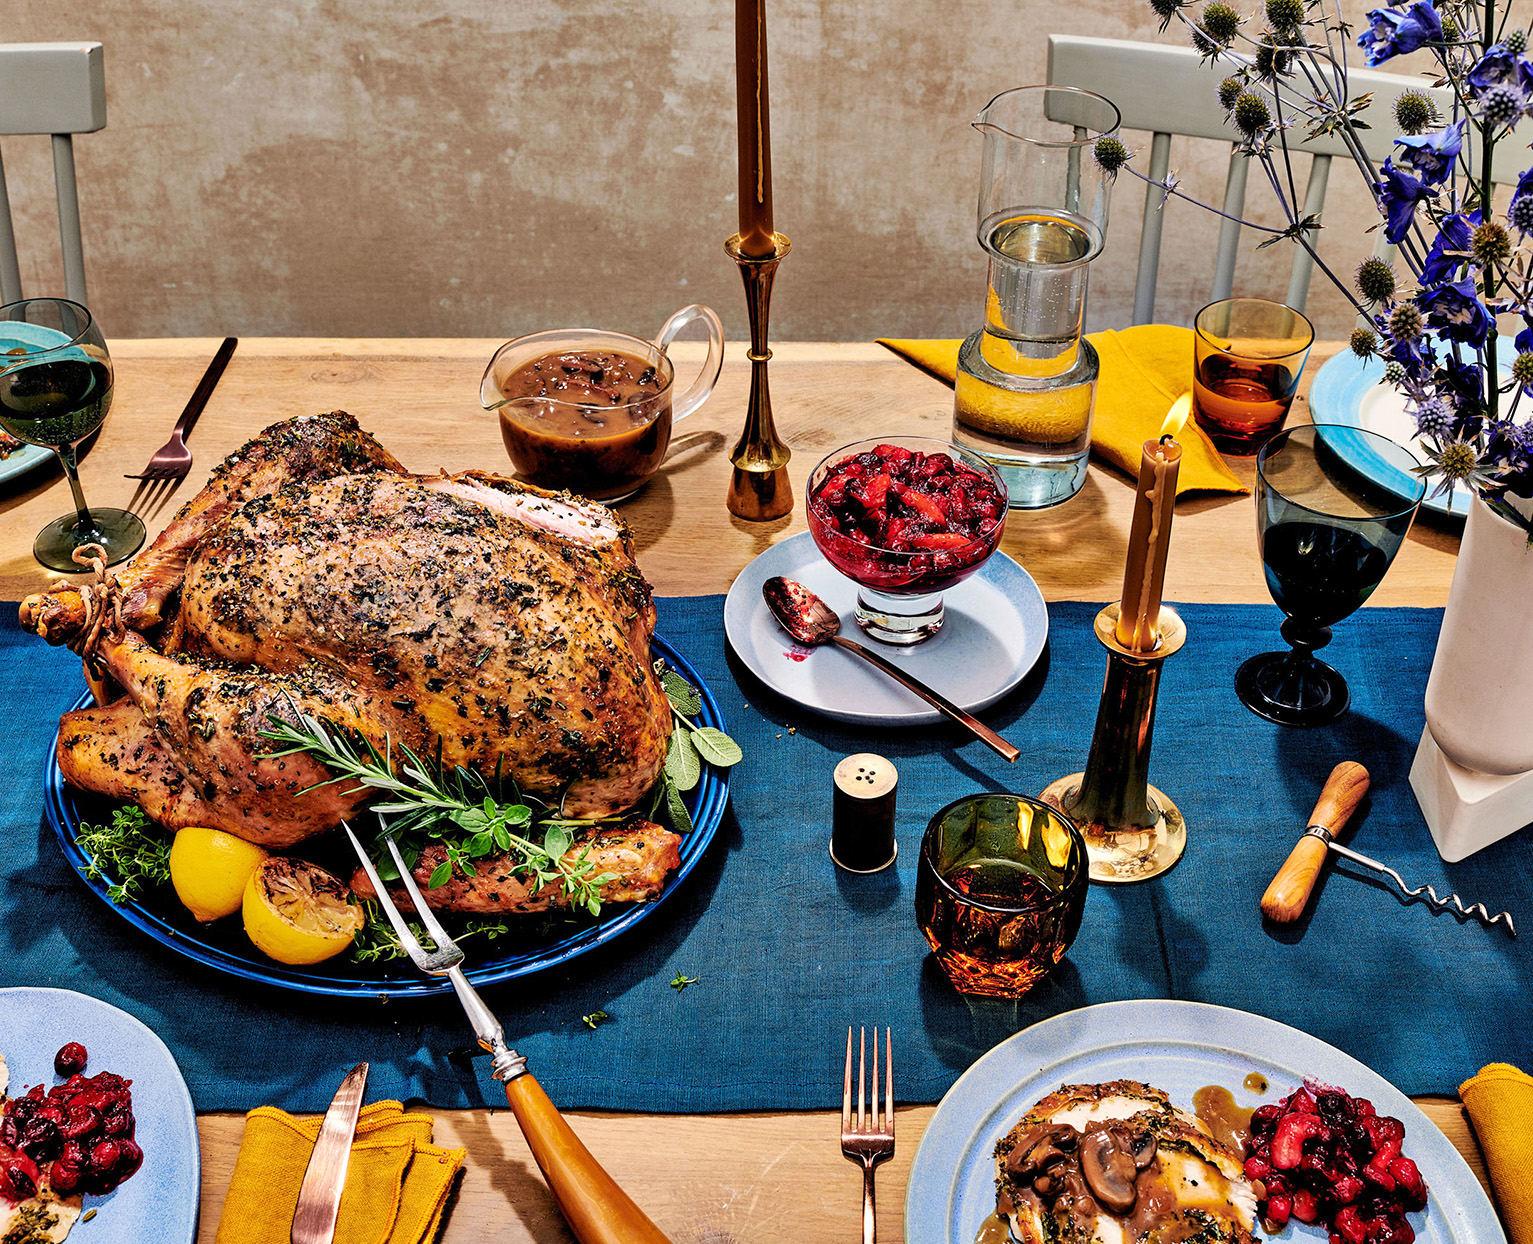 holiday table with roast turkey, gravy, blue table runner, candles, and dried florals